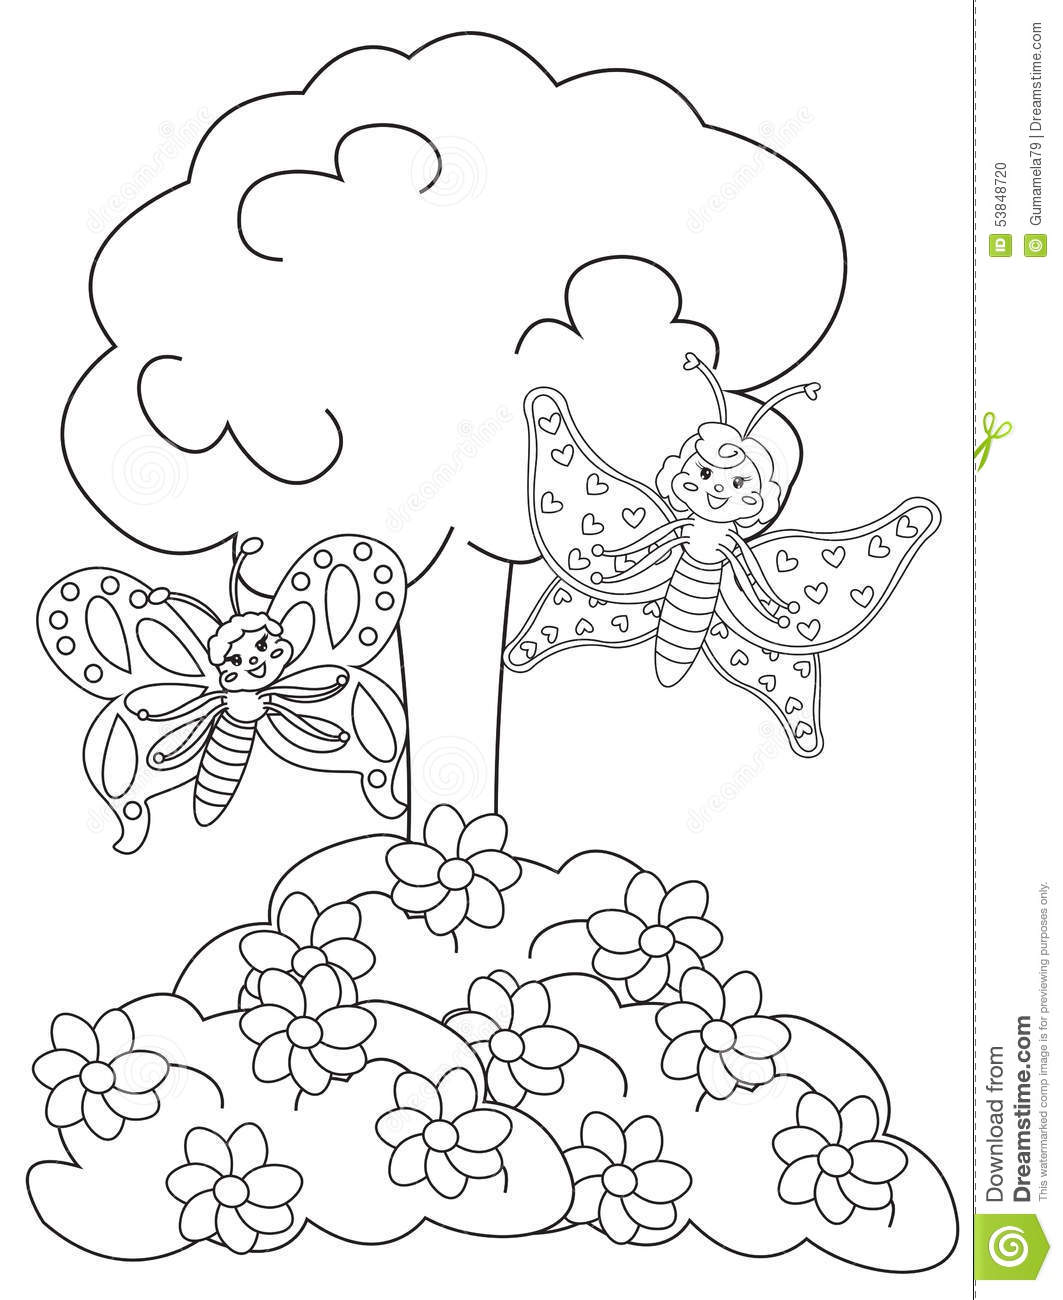 butterfly garden kit coloring pages - photo#17